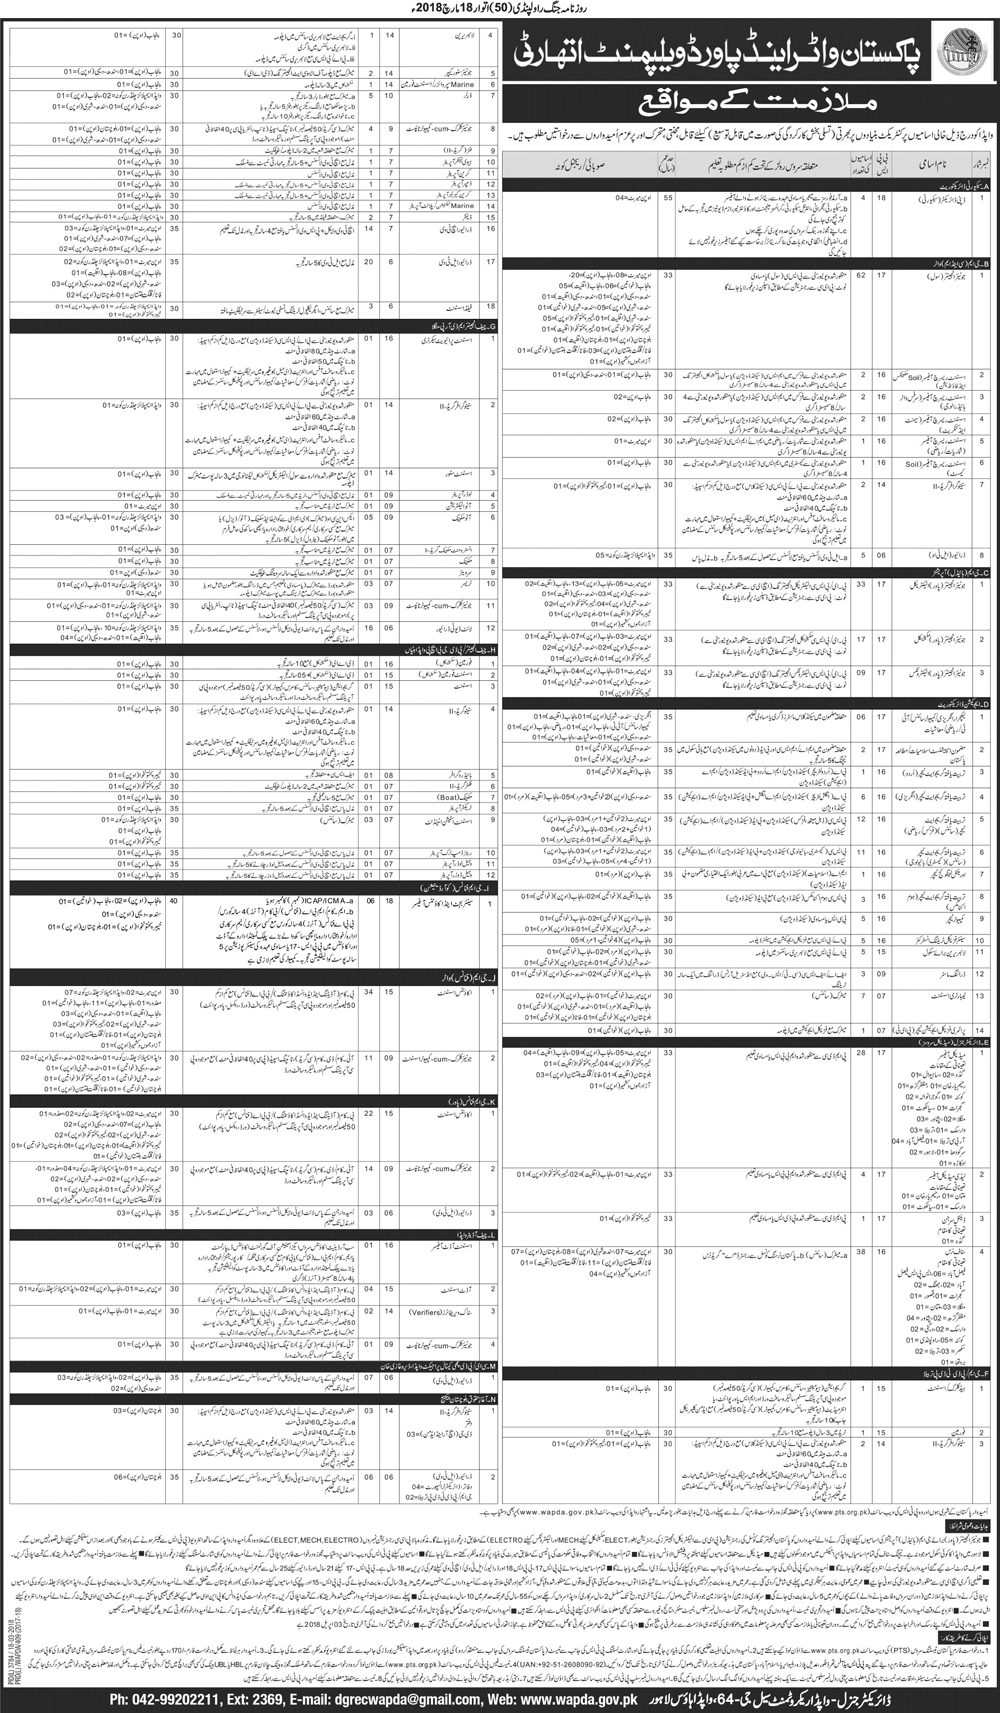 Pakistan Water & Power Development Authority WAPDA Job 2018